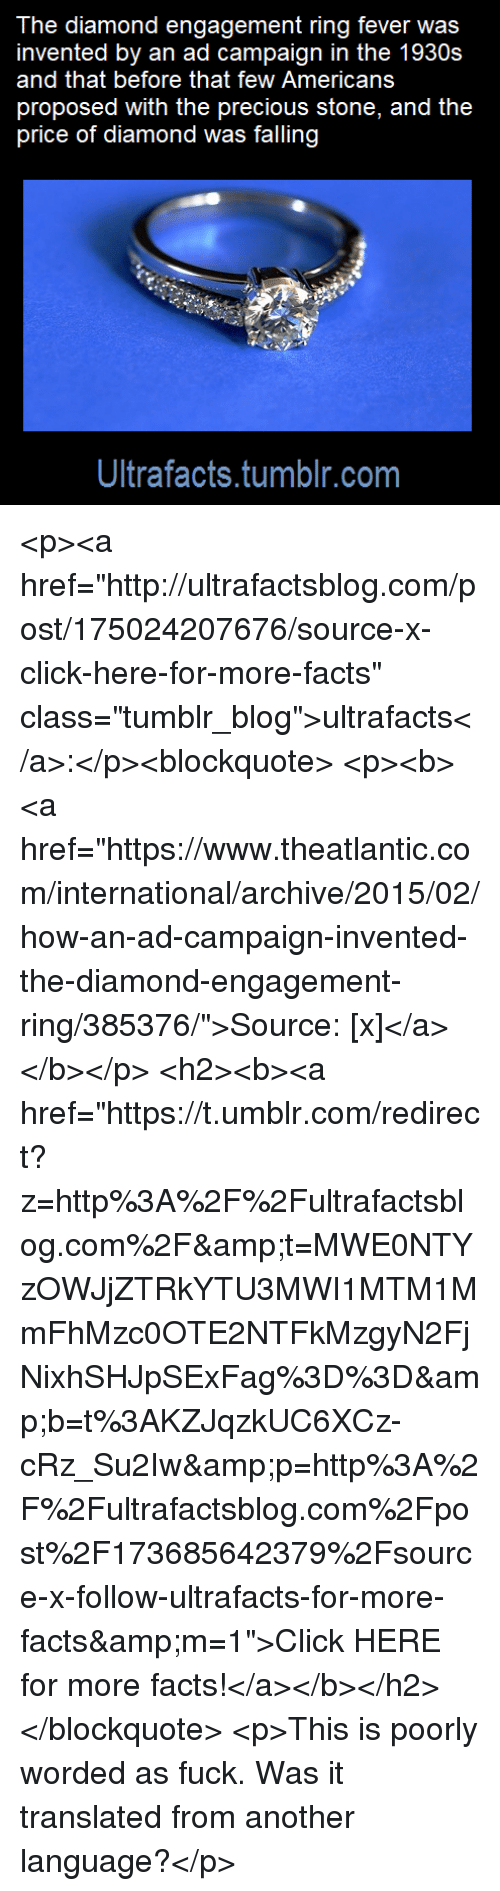 """Click, Facts, and Tumblr: The diamond engagement ring fever was  invented by an ad campaign in the 1930s  and that before that few Americans  price of diamond was falling  Ultrafacts.tumblr.com <p><a href=""""http://ultrafactsblog.com/post/175024207676/source-x-click-here-for-more-facts"""" class=""""tumblr_blog"""">ultrafacts</a>:</p><blockquote> <p><b><a href=""""https://www.theatlantic.com/international/archive/2015/02/how-an-ad-campaign-invented-the-diamond-engagement-ring/385376/"""">Source: [x]</a></b></p> <h2><b><a href=""""https://t.umblr.com/redirect?z=http%3A%2F%2Fultrafactsblog.com%2F&t=MWE0NTYzOWJjZTRkYTU3MWI1MTM1MmFhMzc0OTE2NTFkMzgyN2FjNixhSHJpSExFag%3D%3D&b=t%3AKZJqzkUC6XCz-cRz_Su2Iw&p=http%3A%2F%2Fultrafactsblog.com%2Fpost%2F173685642379%2Fsource-x-follow-ultrafacts-for-more-facts&m=1"""">Click HERE for more facts!</a></b></h2> </blockquote>  <p>This is poorly worded as fuck. Was it translated from another language?</p>"""